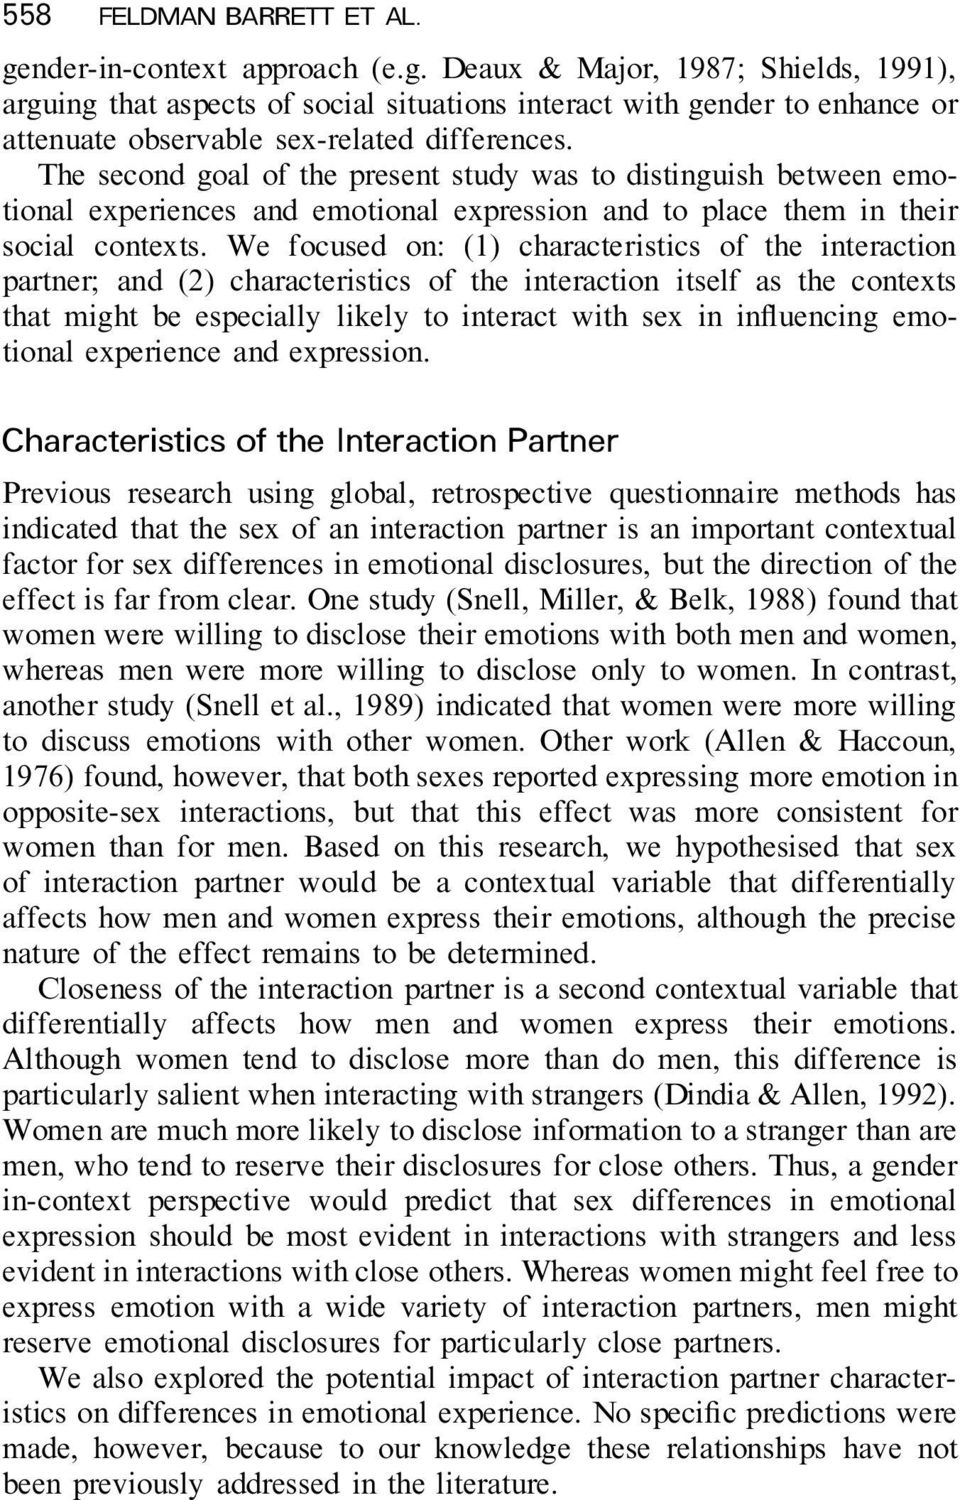 We focused on: (1) characteristics of the interaction partner; and (2) characteristics of the interaction itself as the contexts that might be especially likely to interact with sex in in uencing